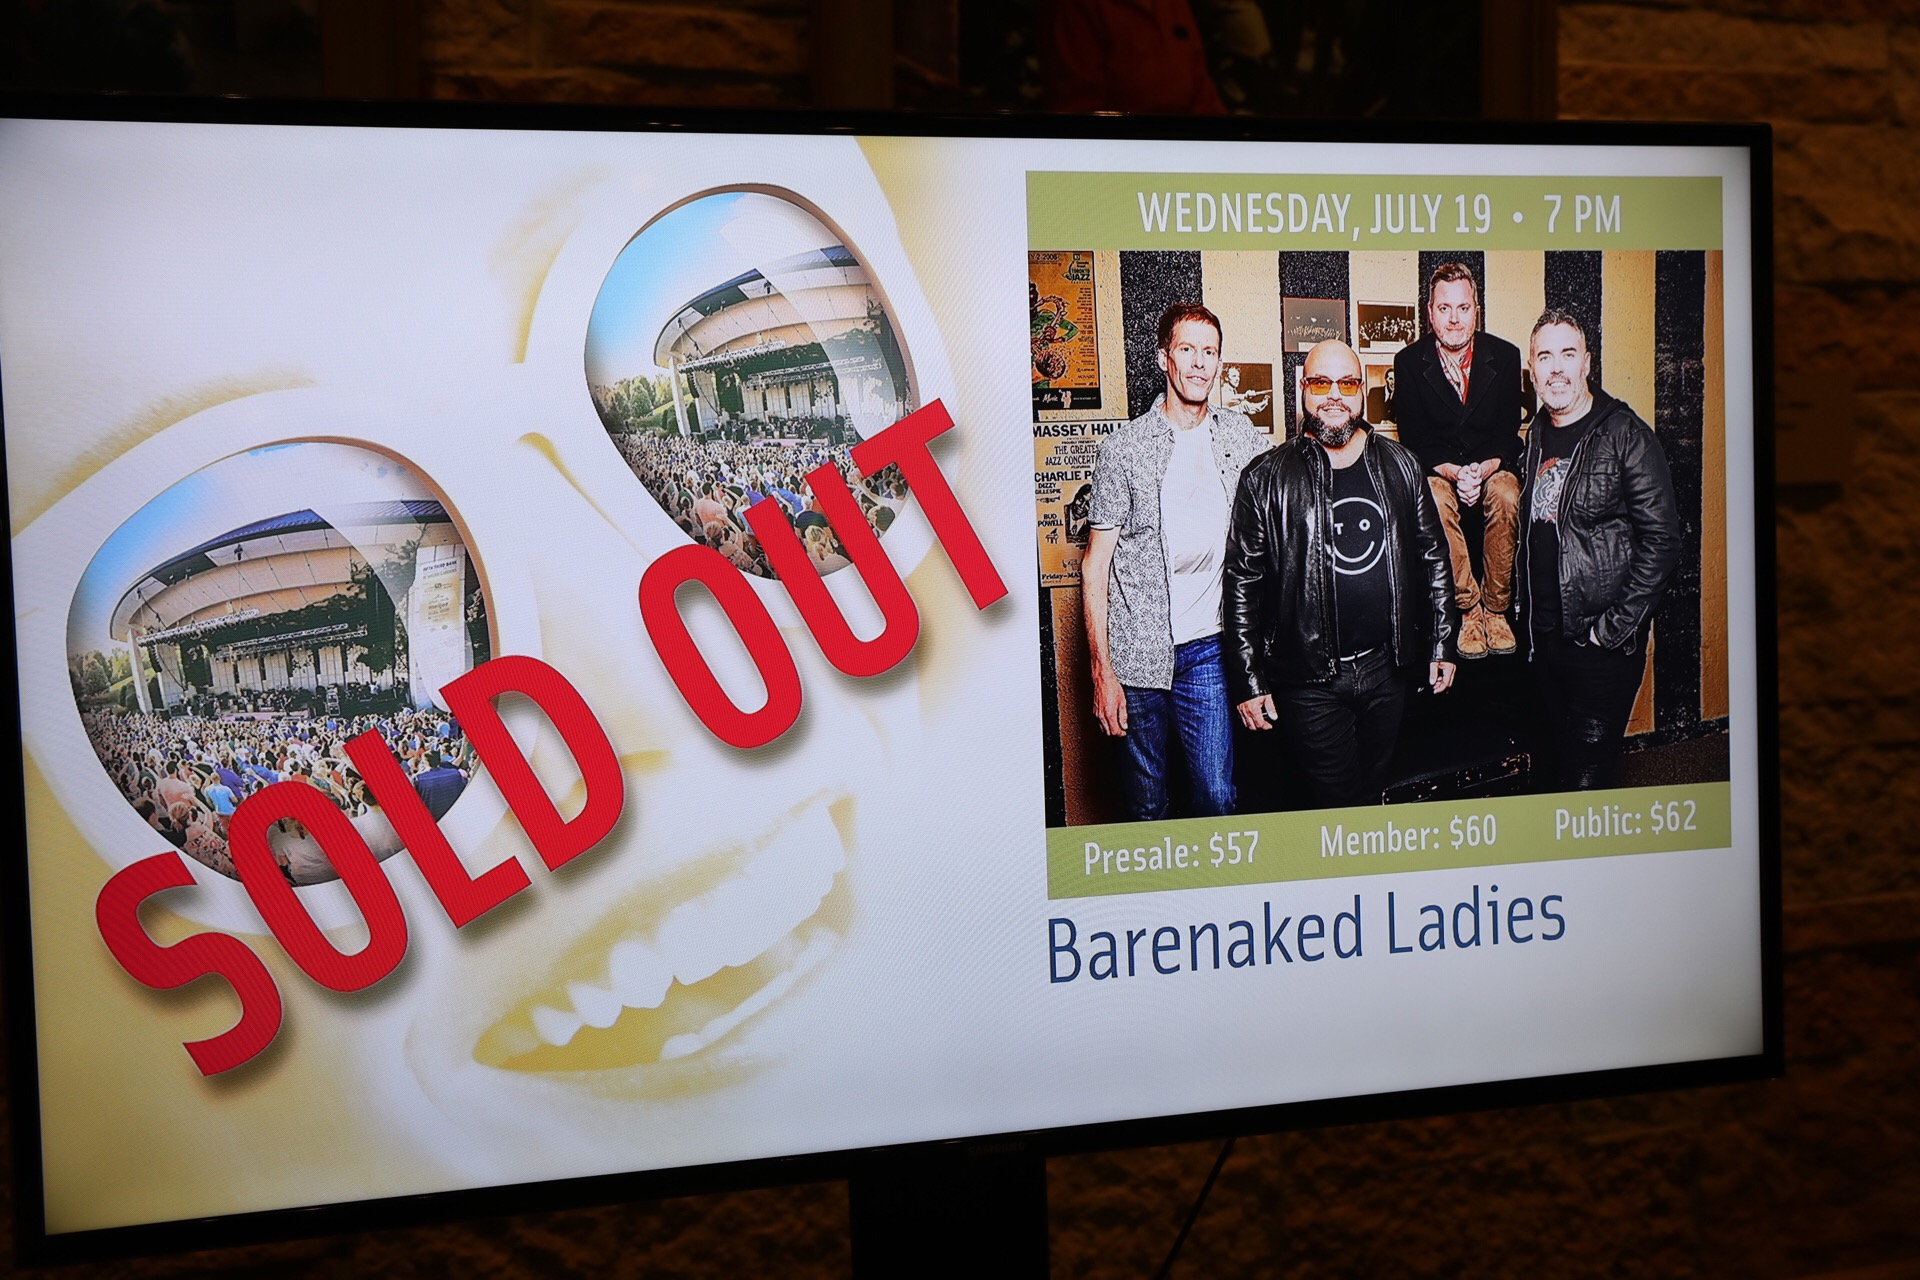 Meijer Gardens Sells Out Tickets For Barenaked Ladies Sheryl Crow The Shins Huey Lewis And